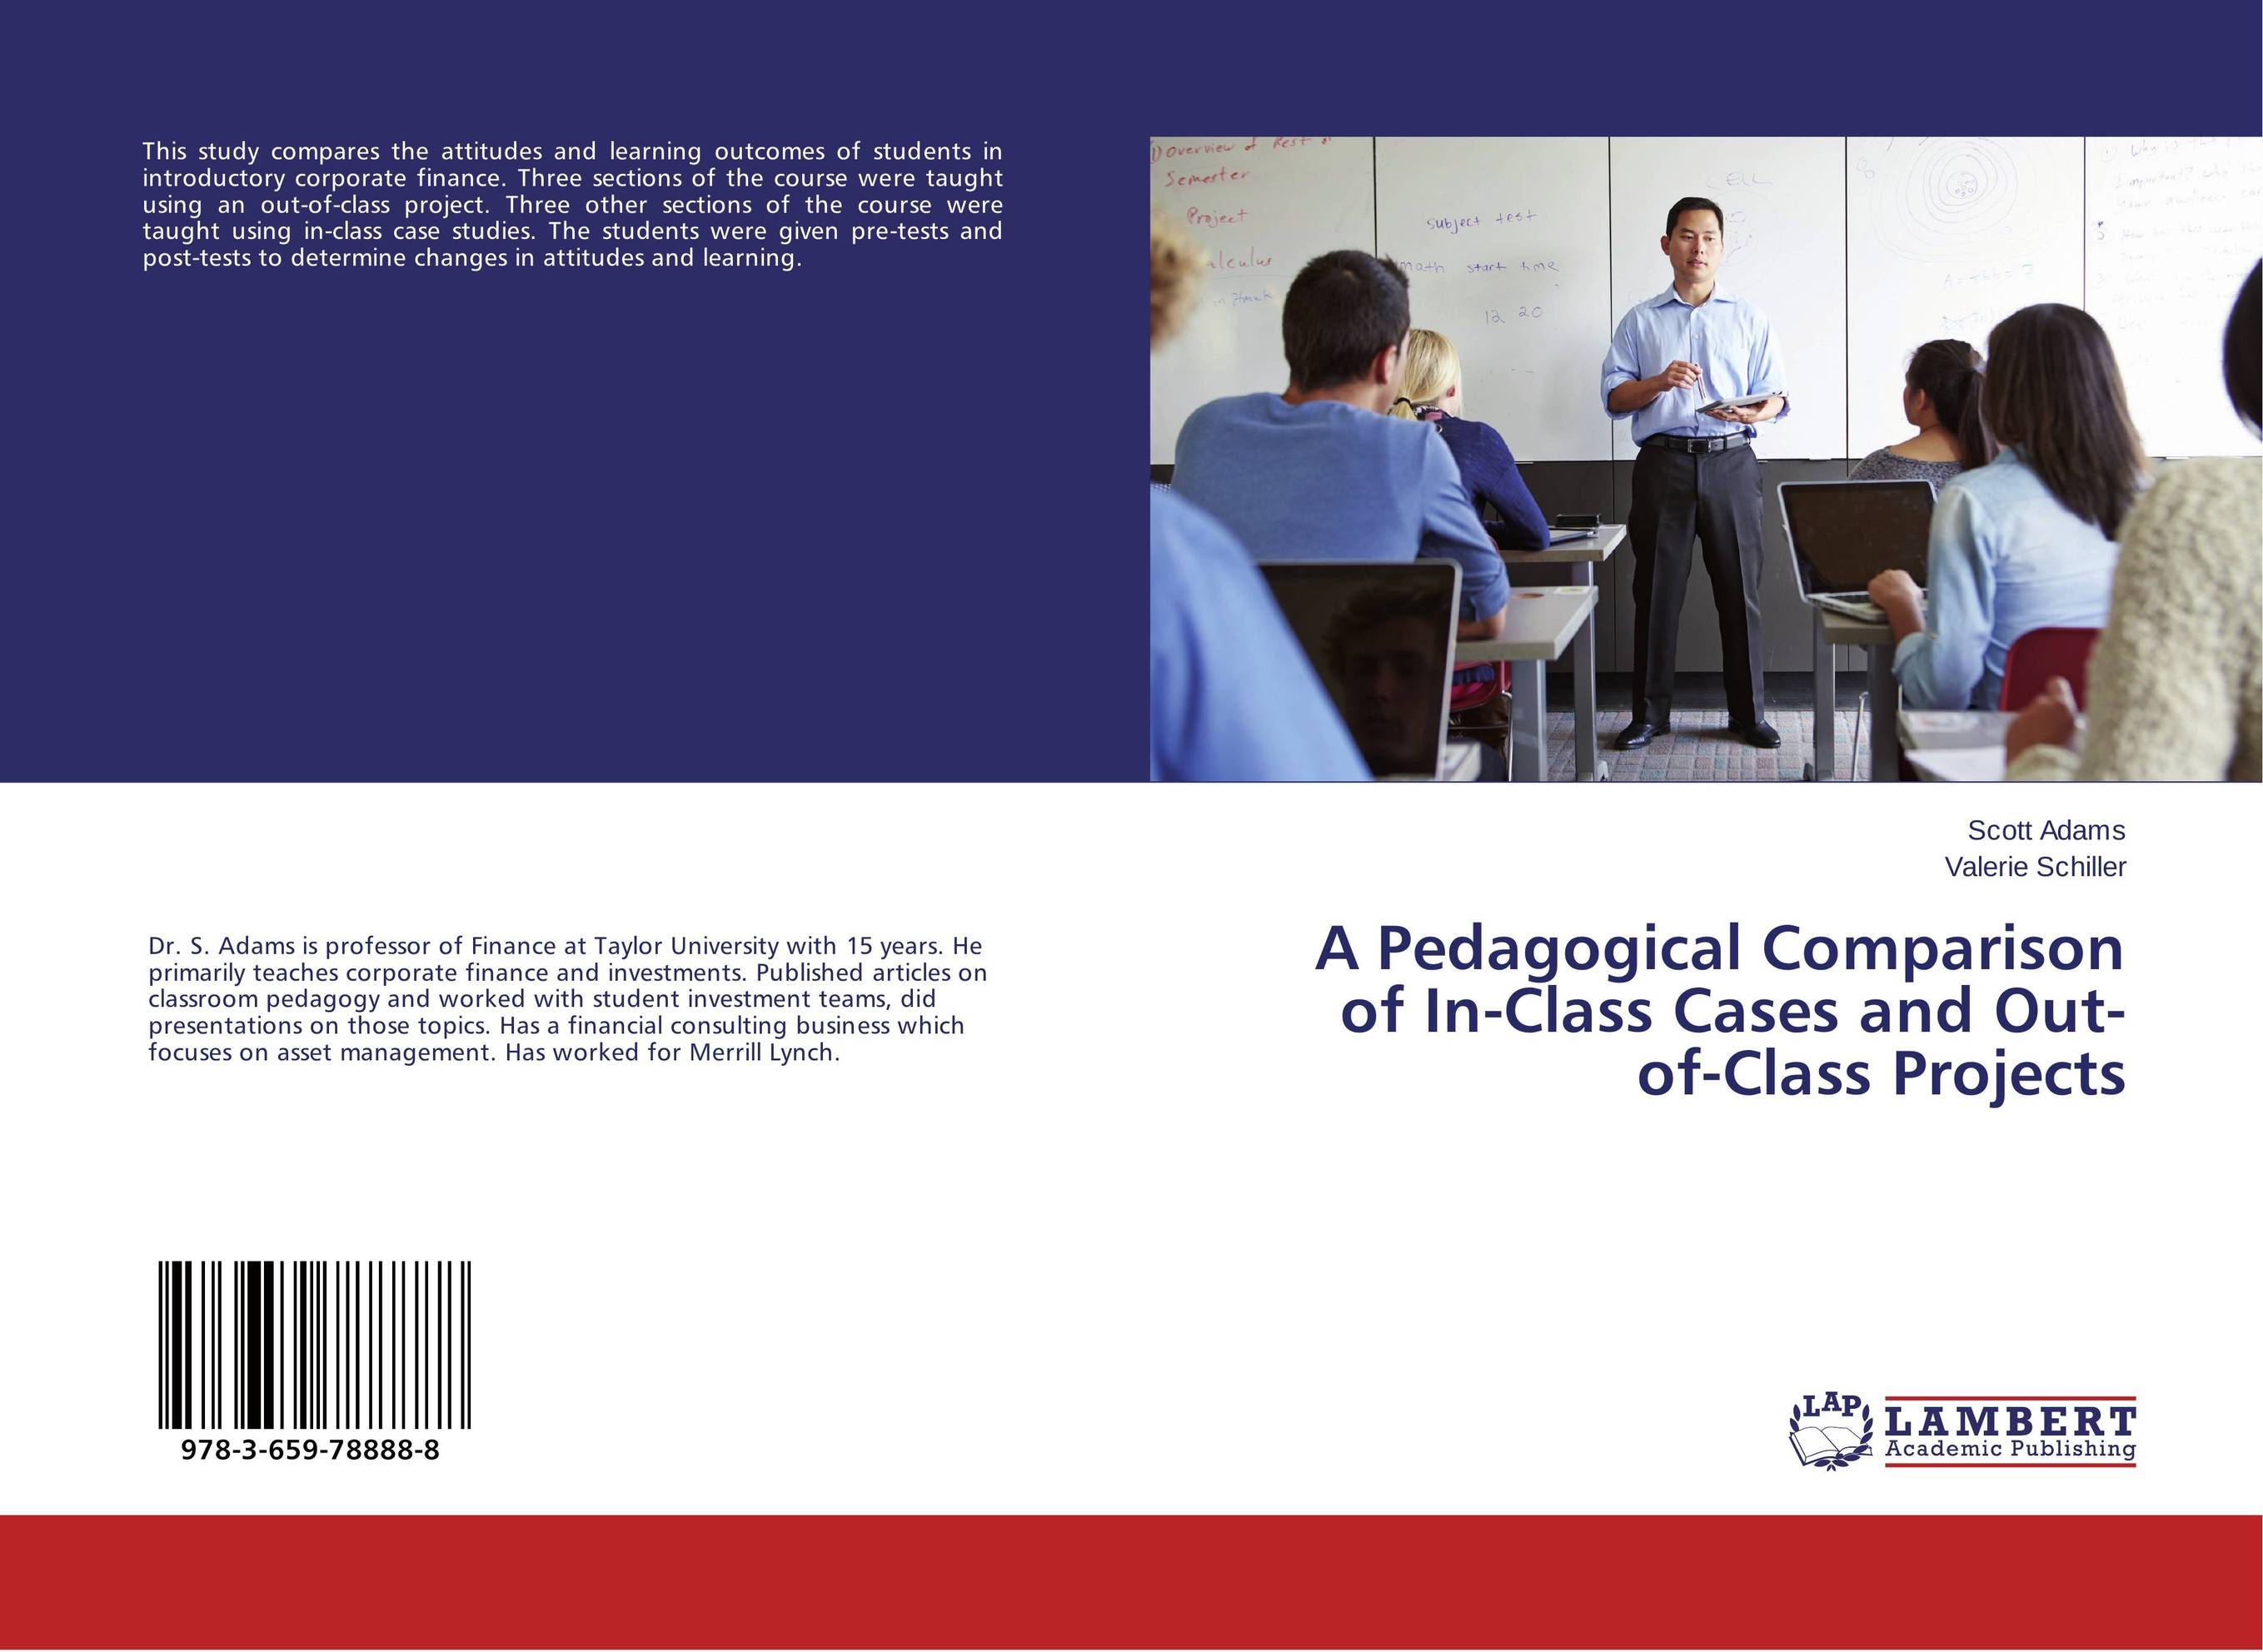 все цены на A Pedagogical Comparison of In-Class Cases and Out-of-Class Projects